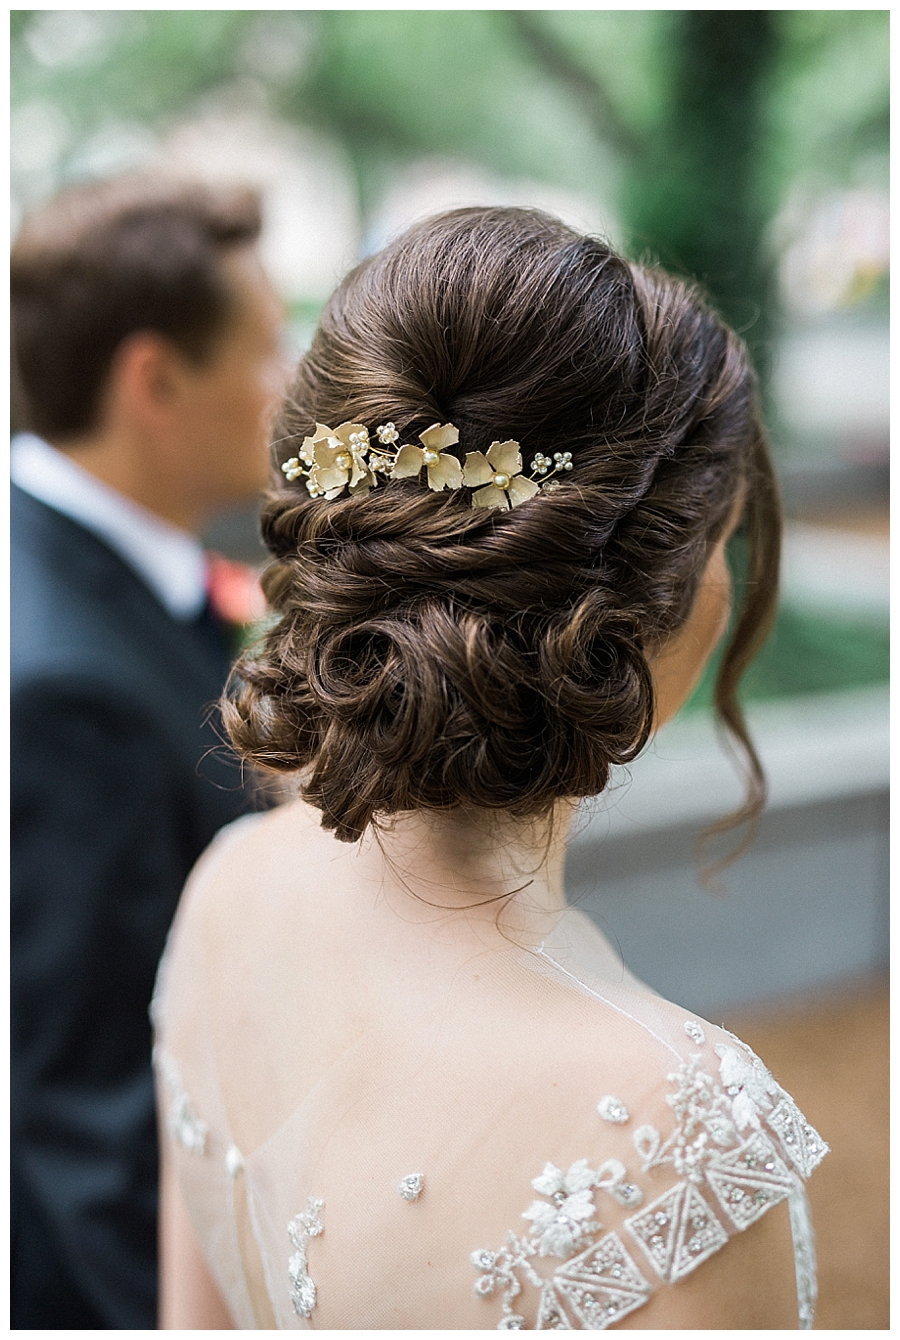 fine art wedding photography at the Art Institute of Chicago, Illinois